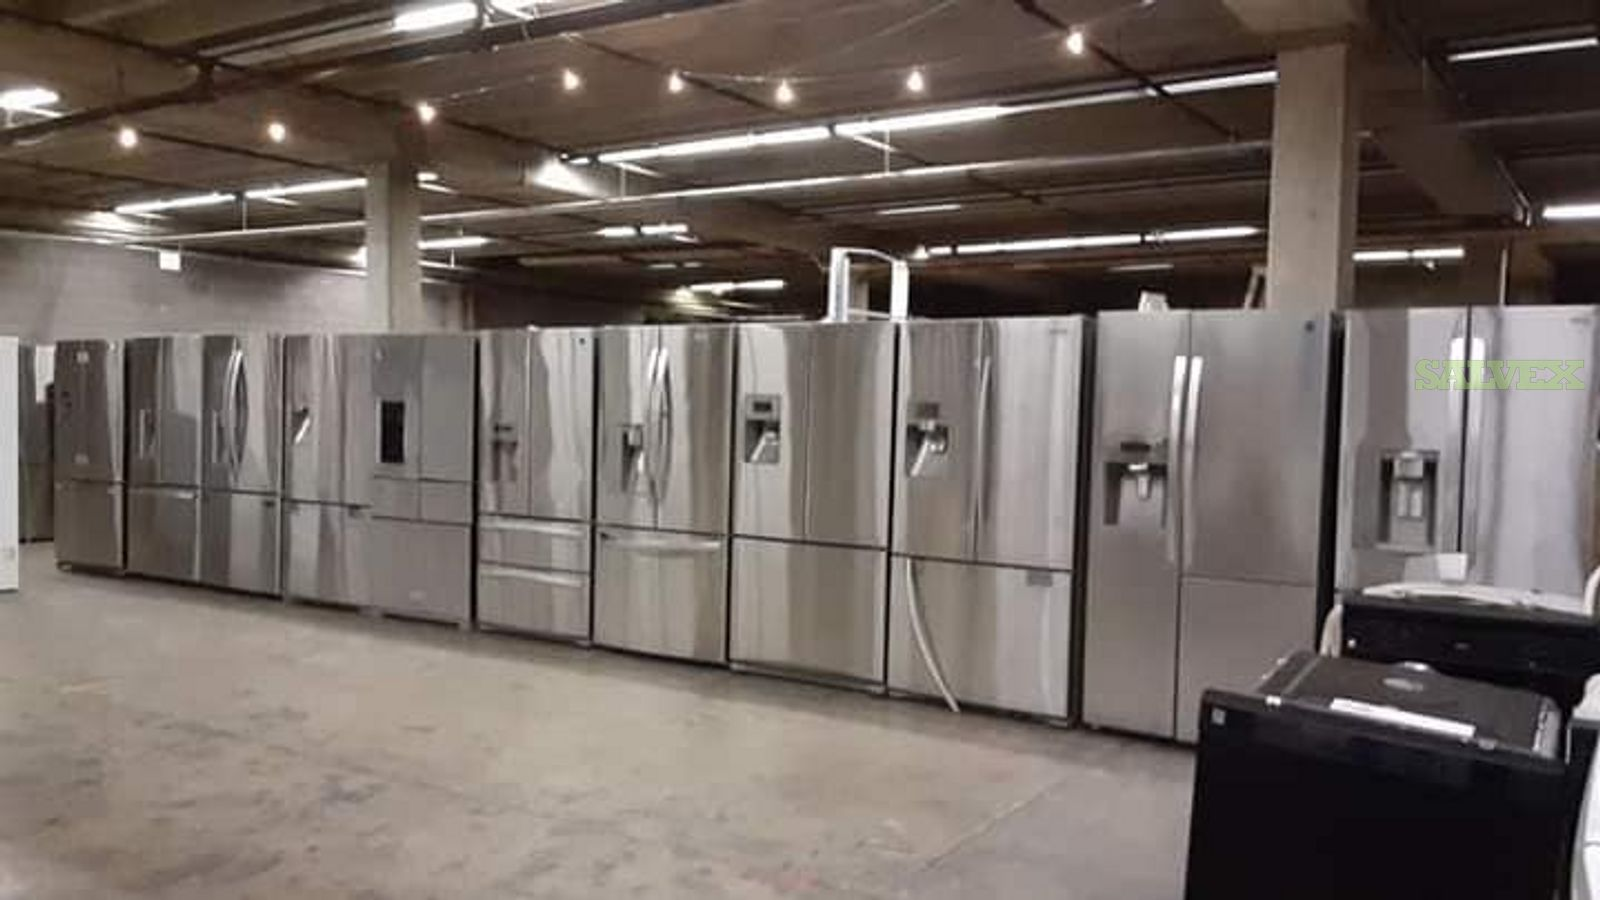 Refrigerators by Samsung, LG, Whirlpool, Maytag & More (60 Units) in NC